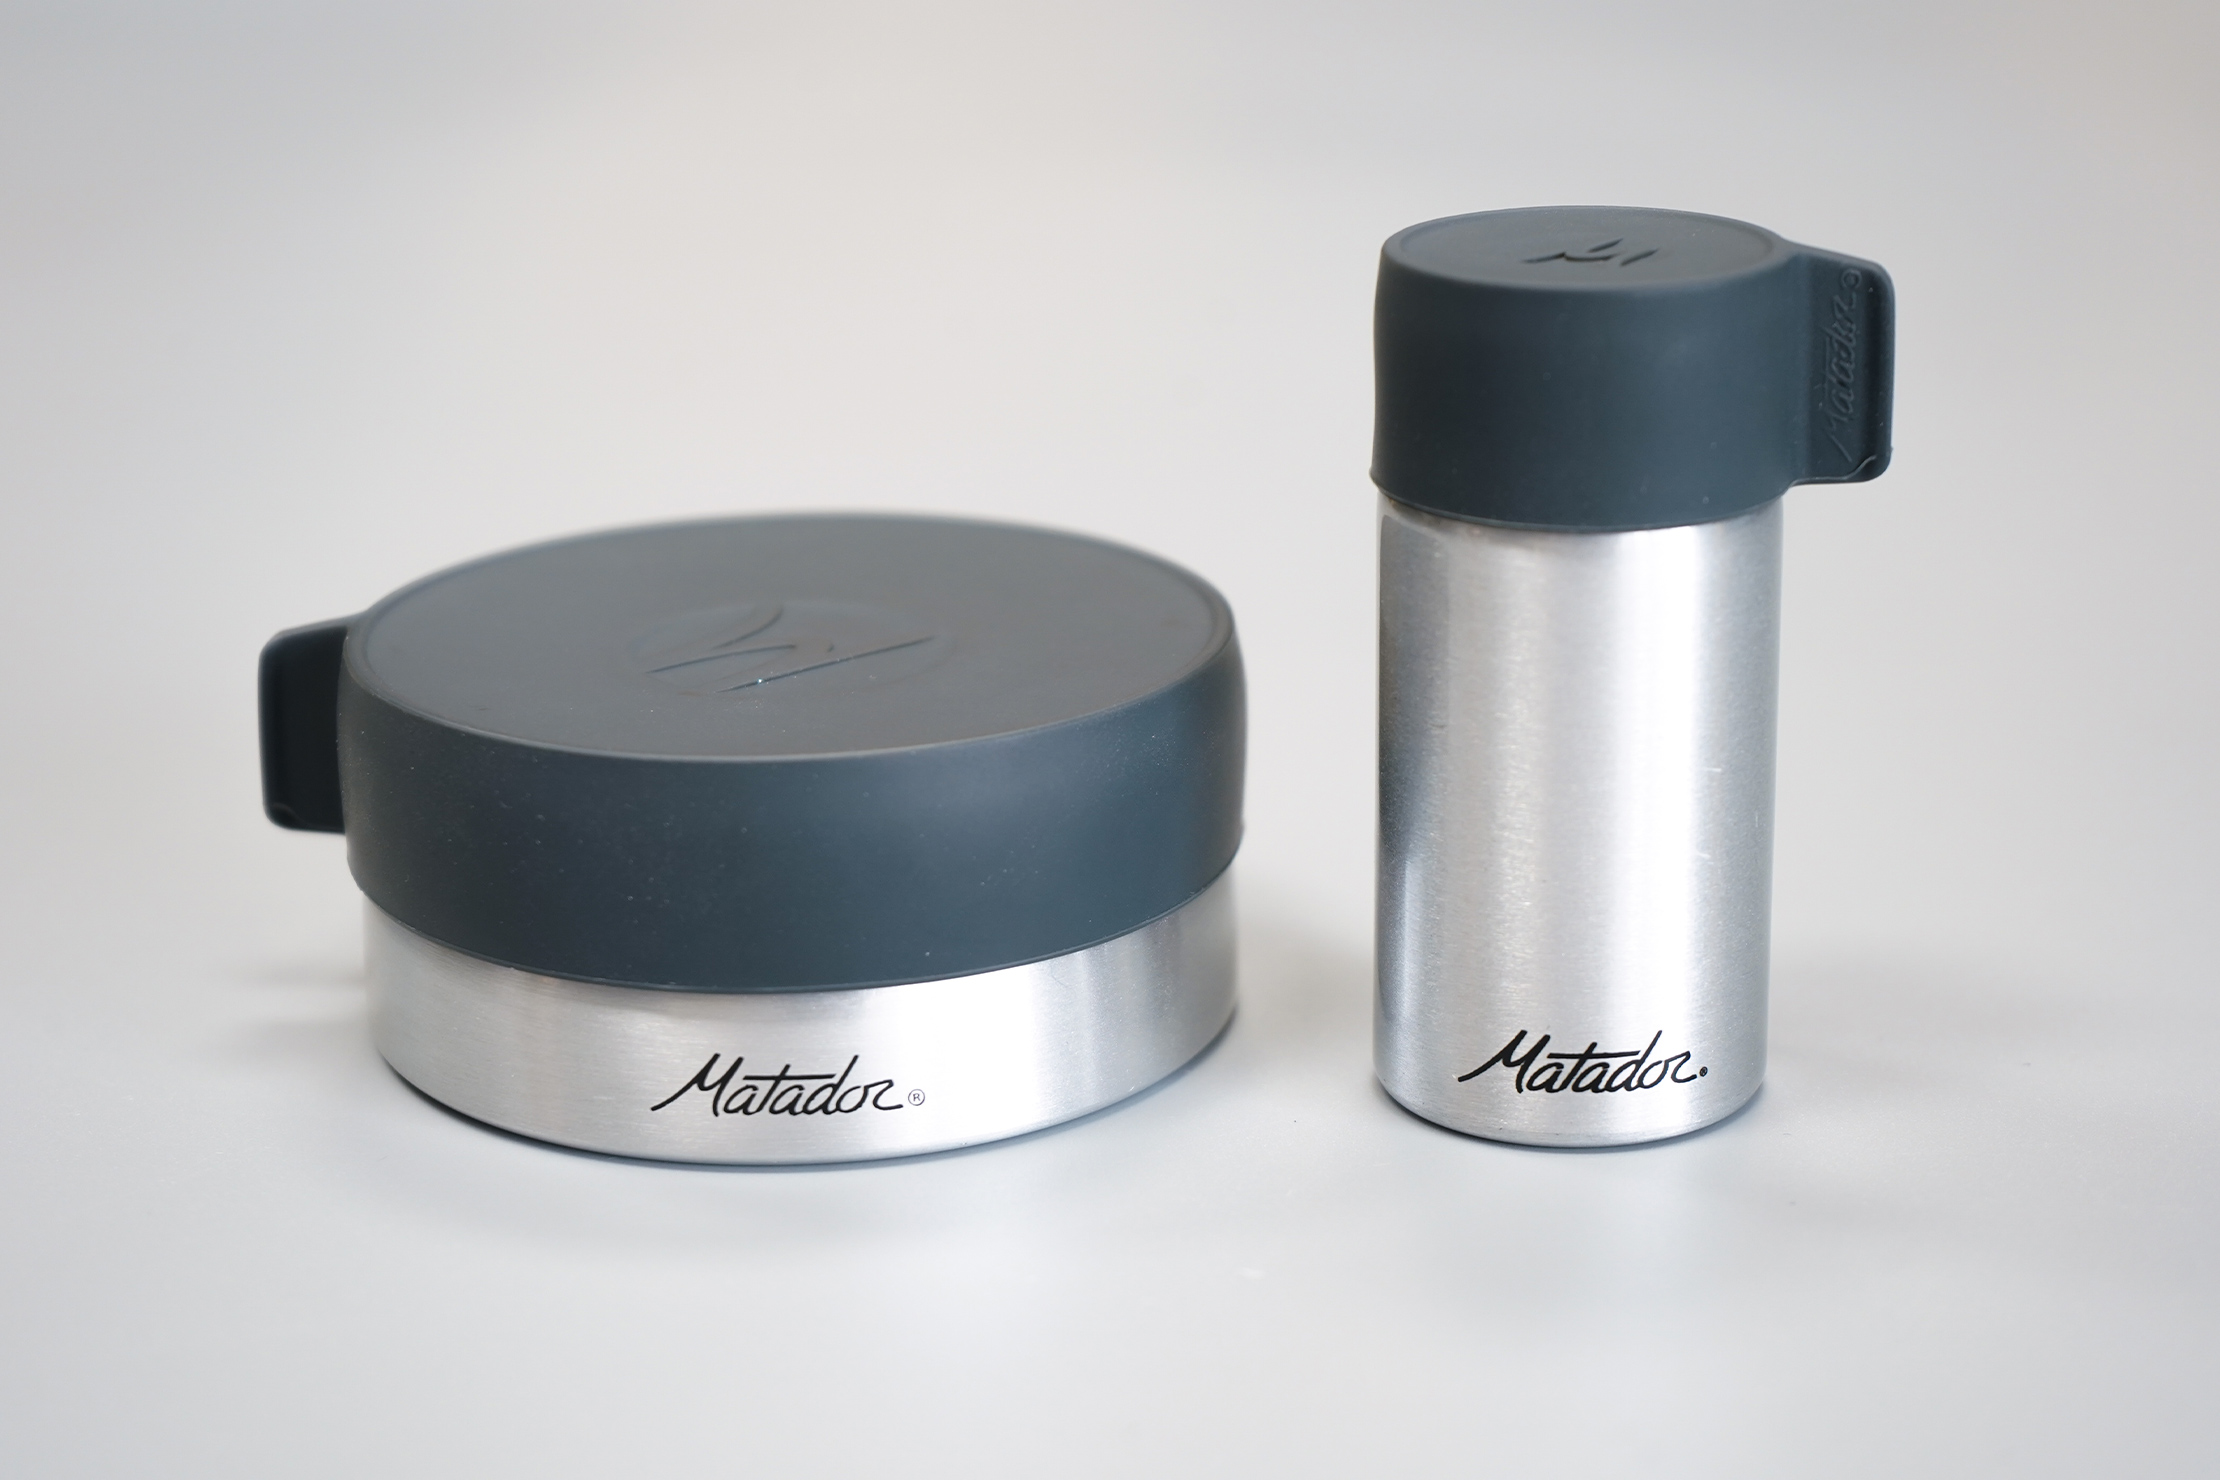 Matador Waterproof Travel Canisters | 100 ml & 40 ml respectively